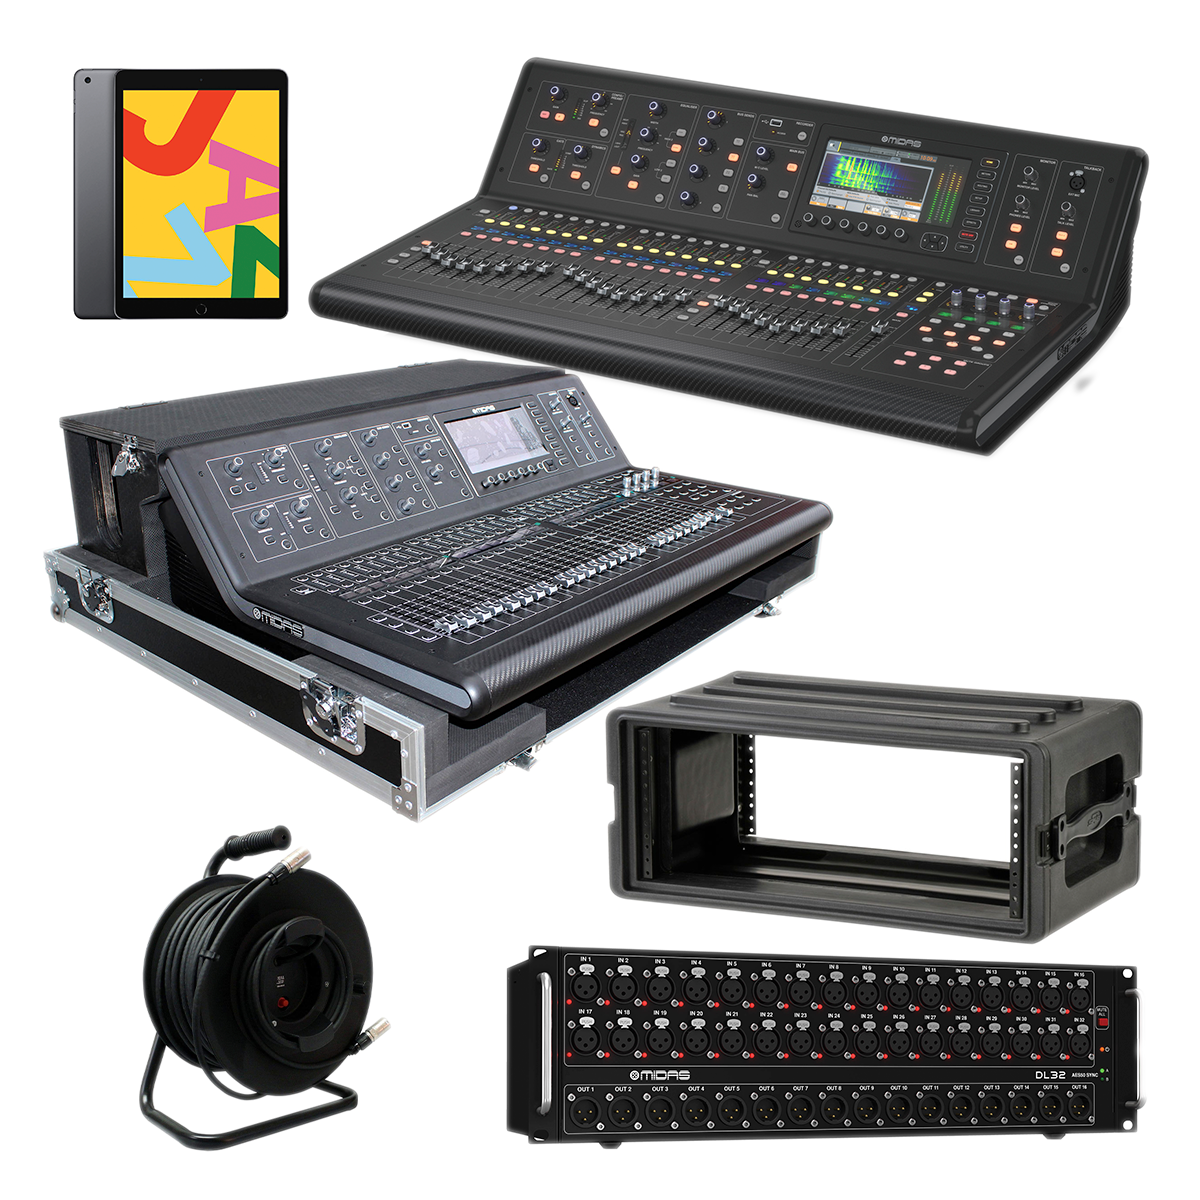 - 8 Midas M32 LIVE - ProX XS-MIDM32DHW - DL32 - Proco Cat6e 150Ft - Apple iPad - SKB 1SKB-R4S - $6999.99